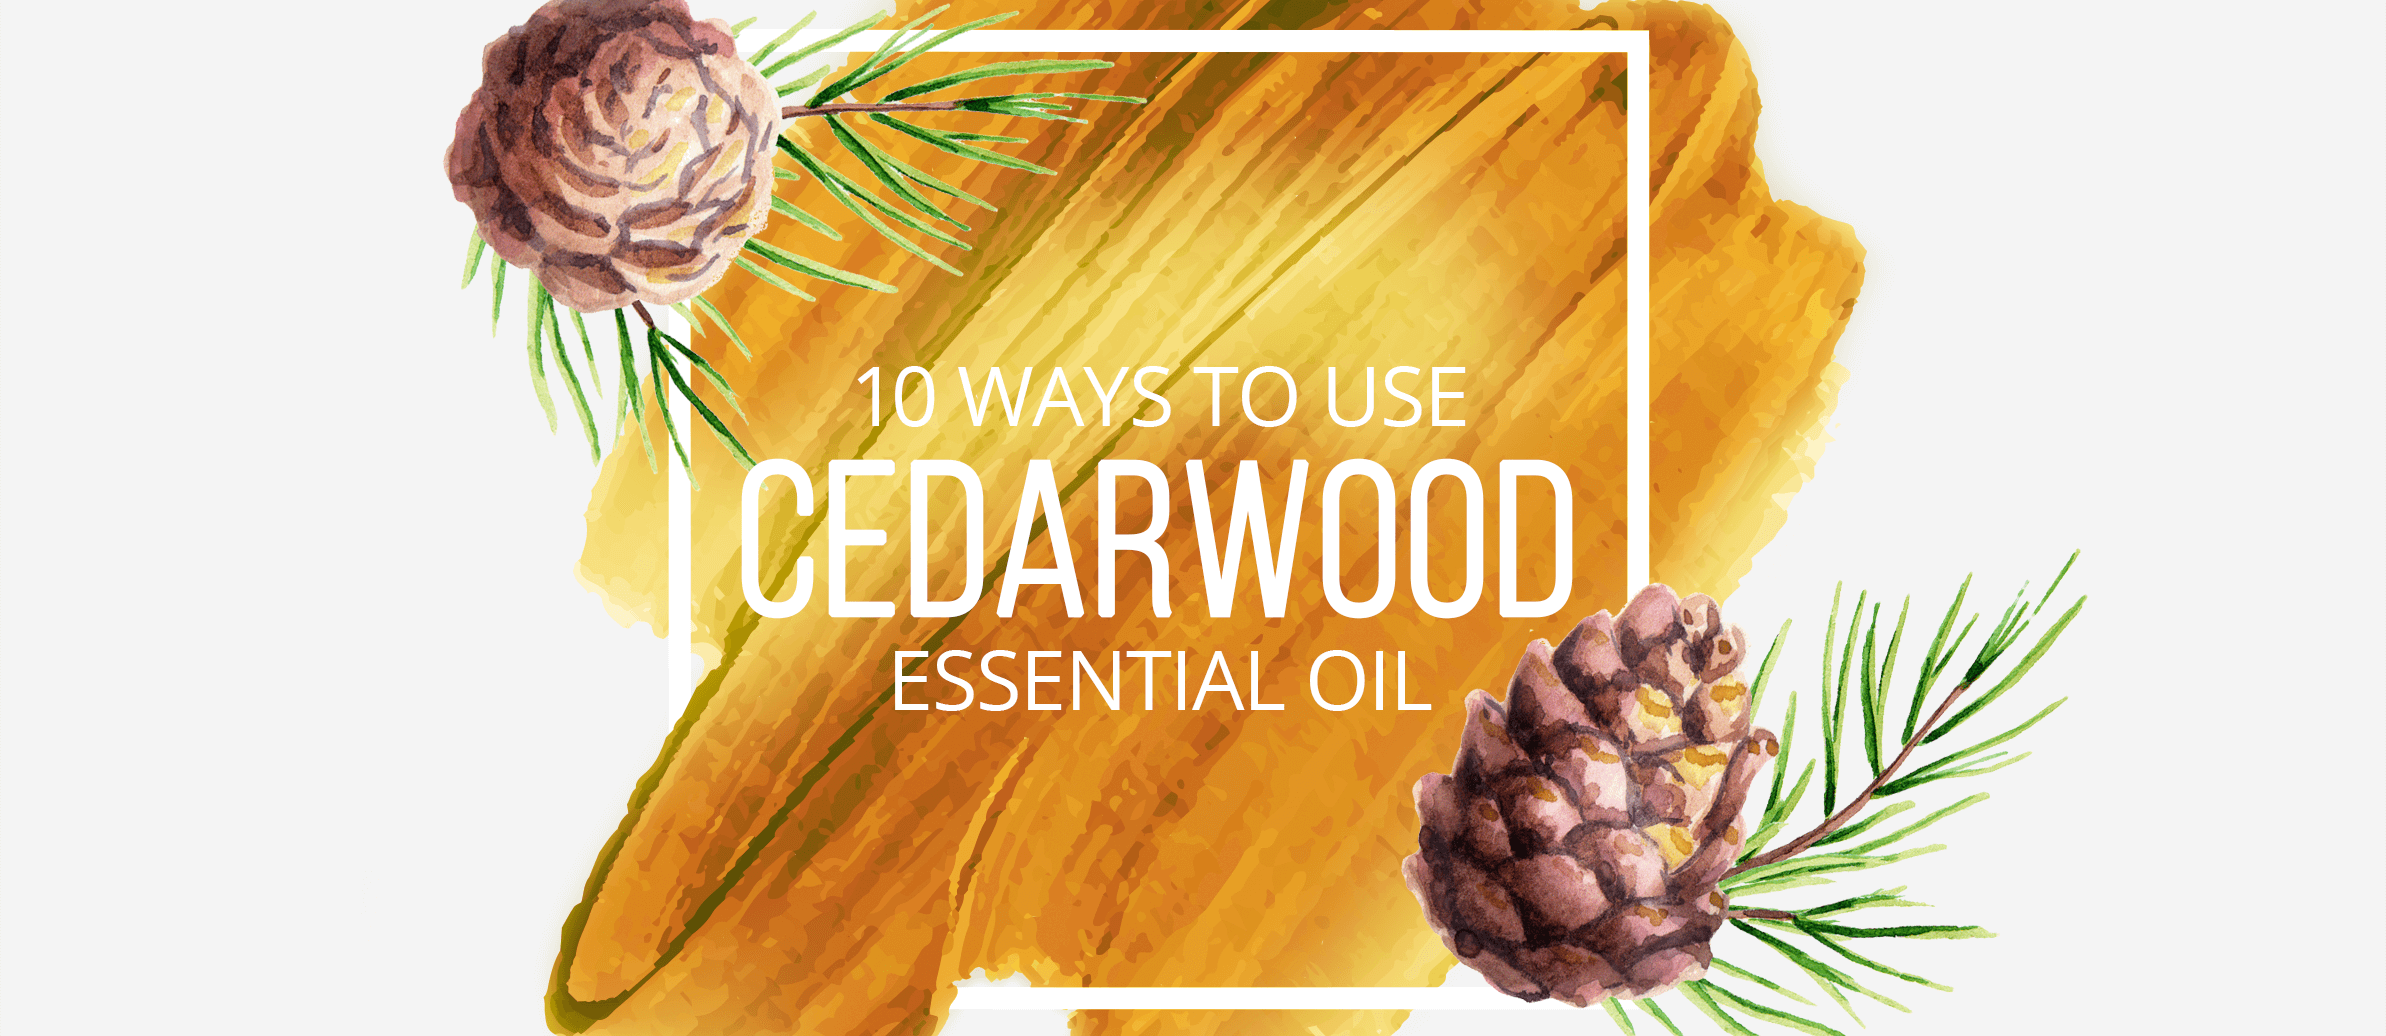 10 Ways to Use Cedarwood Essential Oil